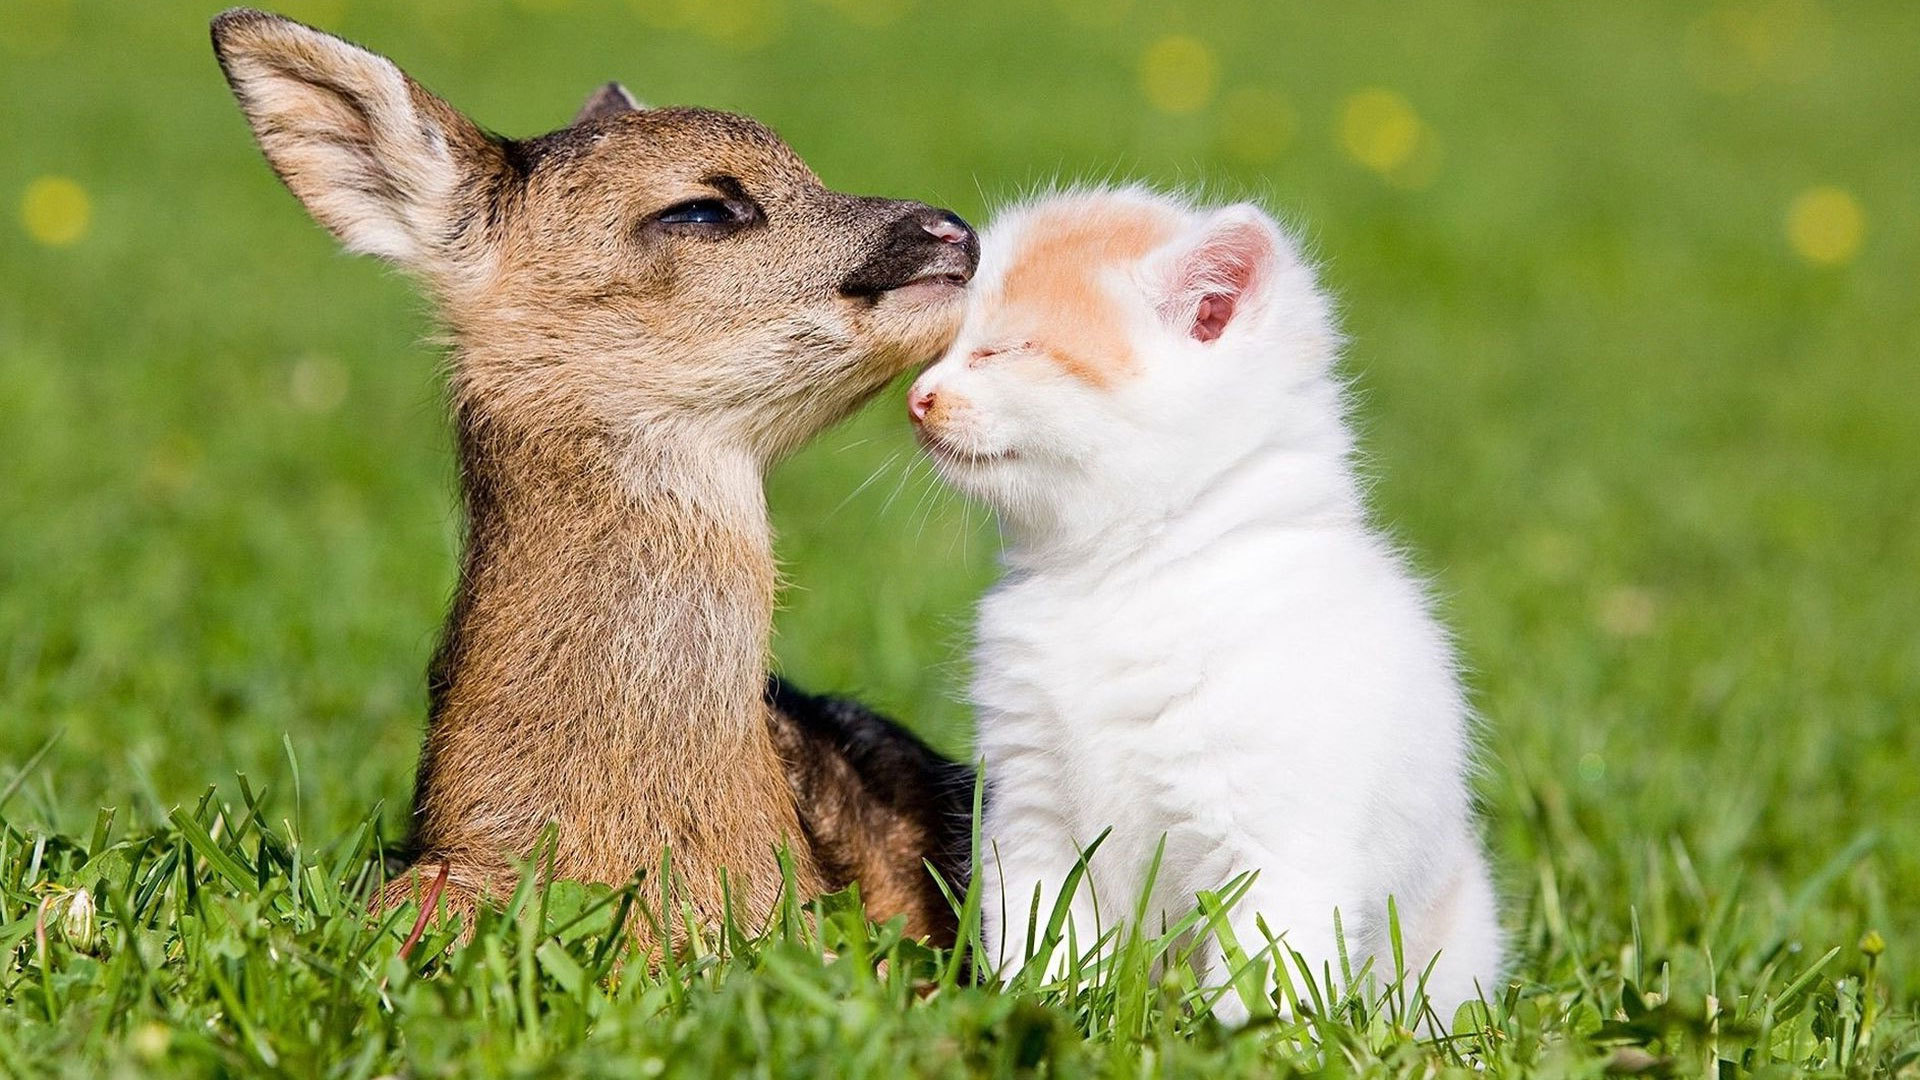 Kitten and baby deer wallpapers and images   wallpapers pictures 1920x1080